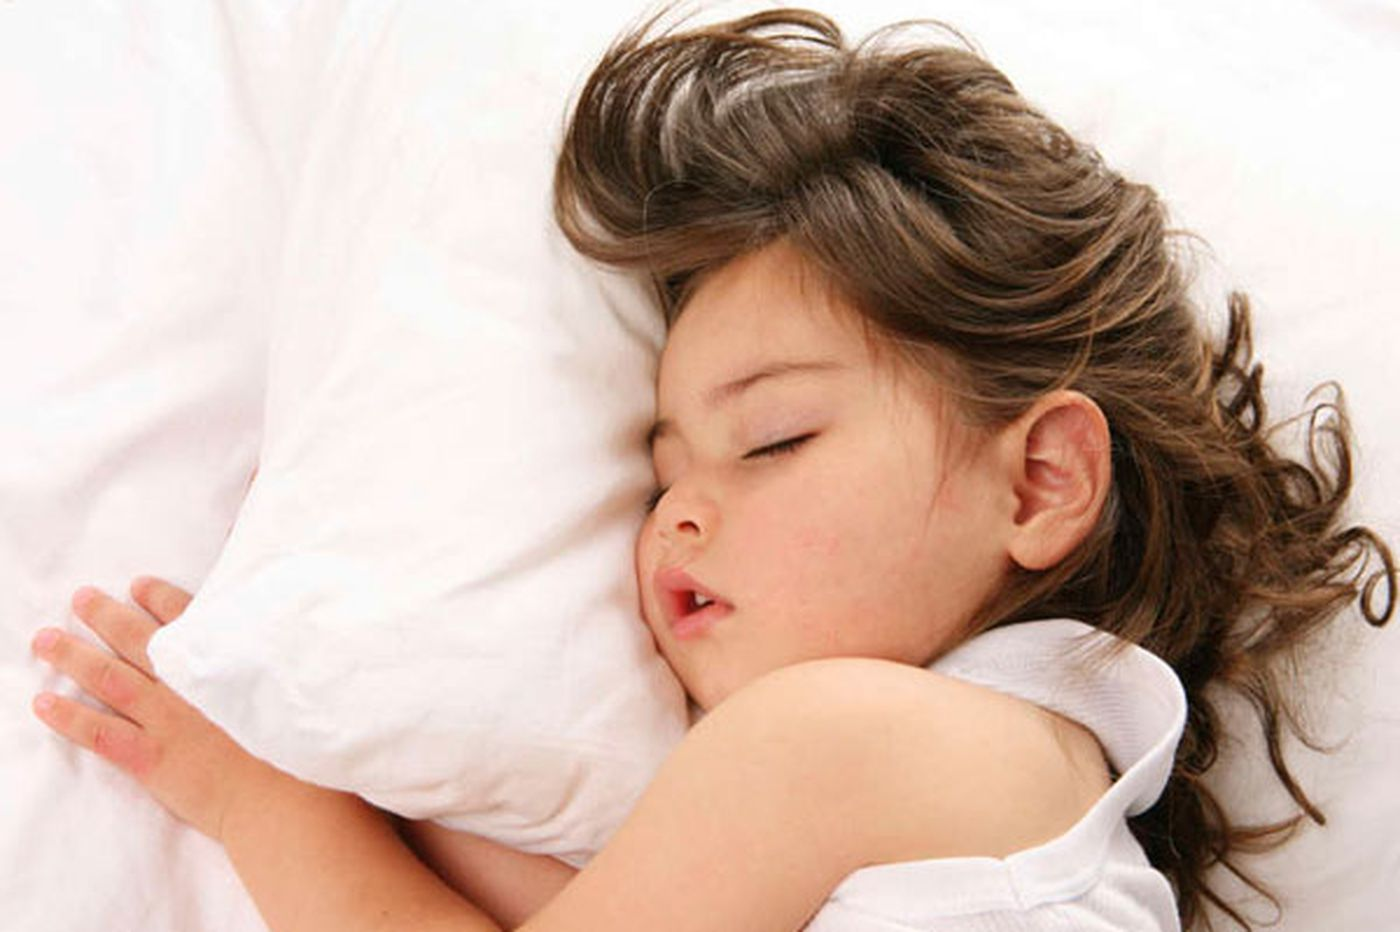 Study: Removing tonsils, adenoids helps sleep apnea